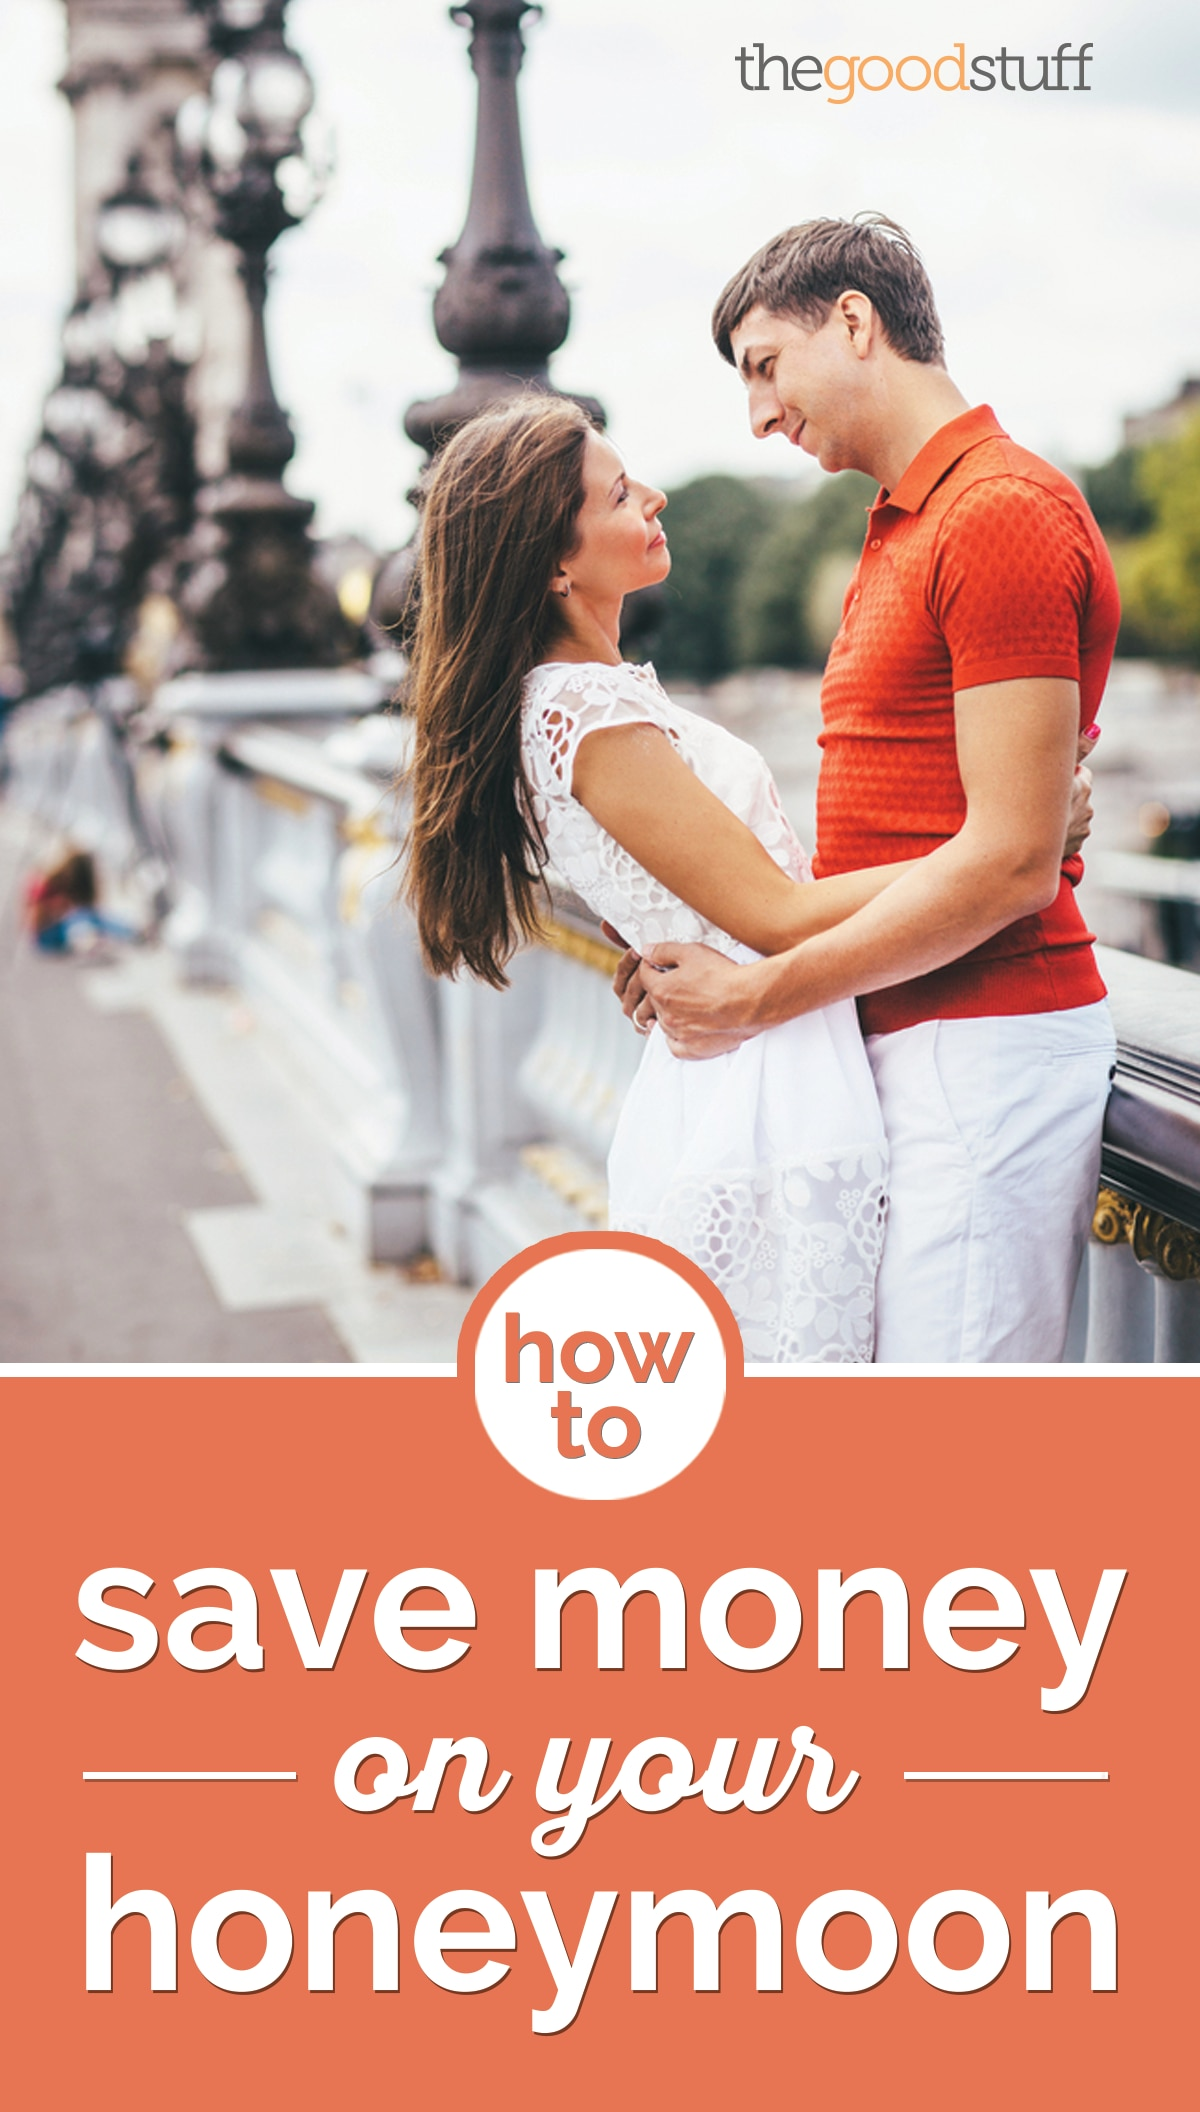 How to Save Money on Your Honeymoon | thegoodstuff